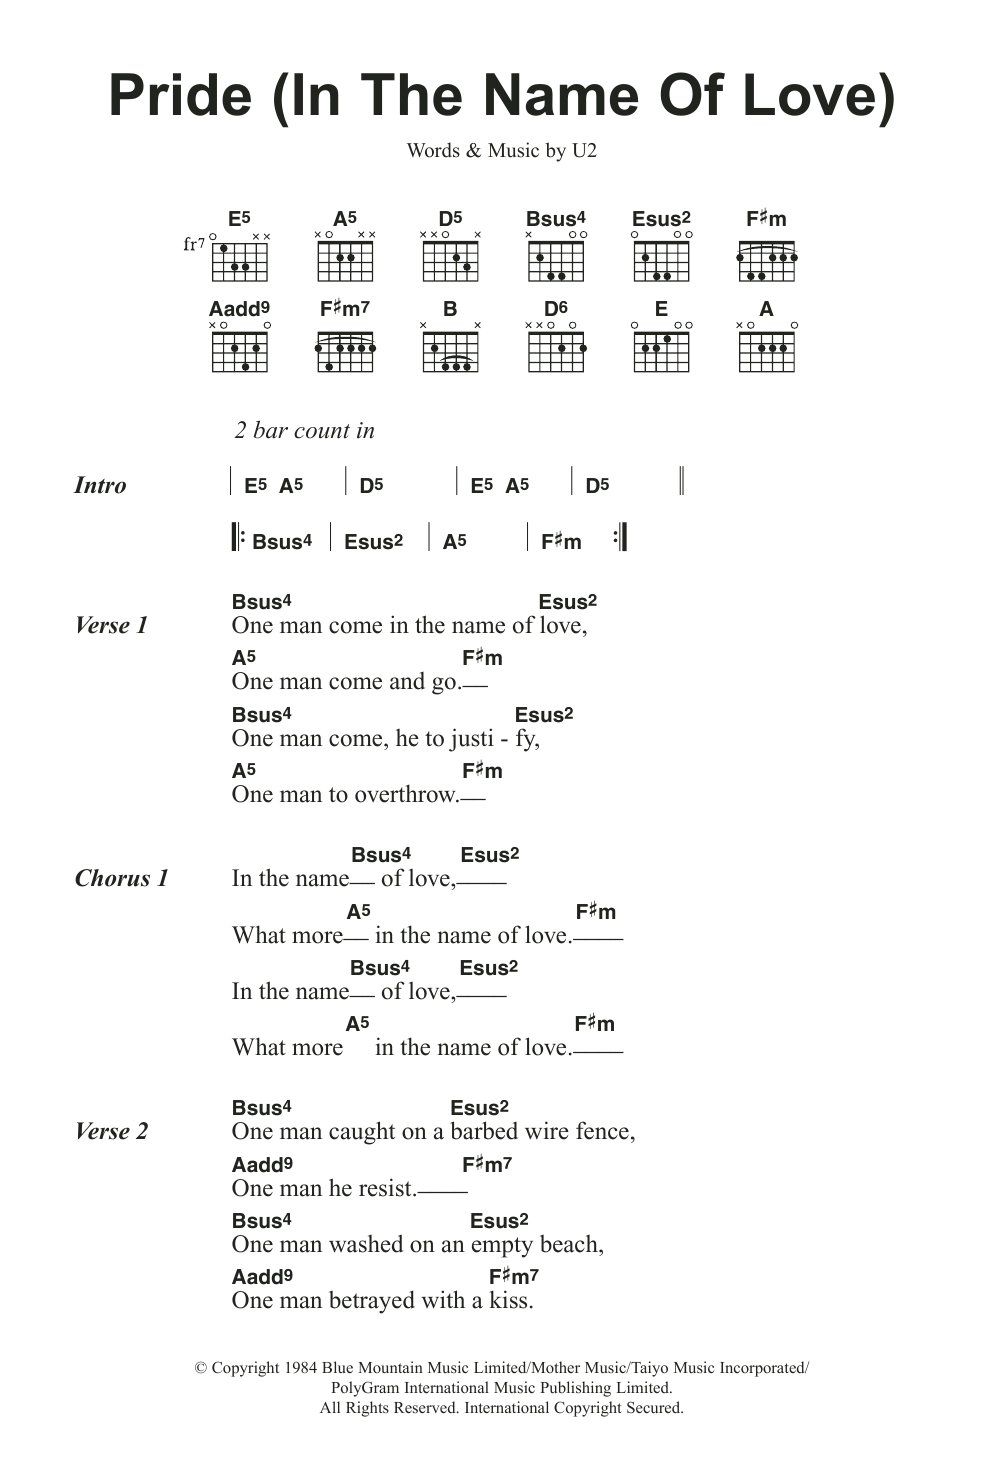 Pride (In The Name Of Love) by U2 Piano, Vocal & Guitar (Right-Hand Melody)  Digital Sheet Music